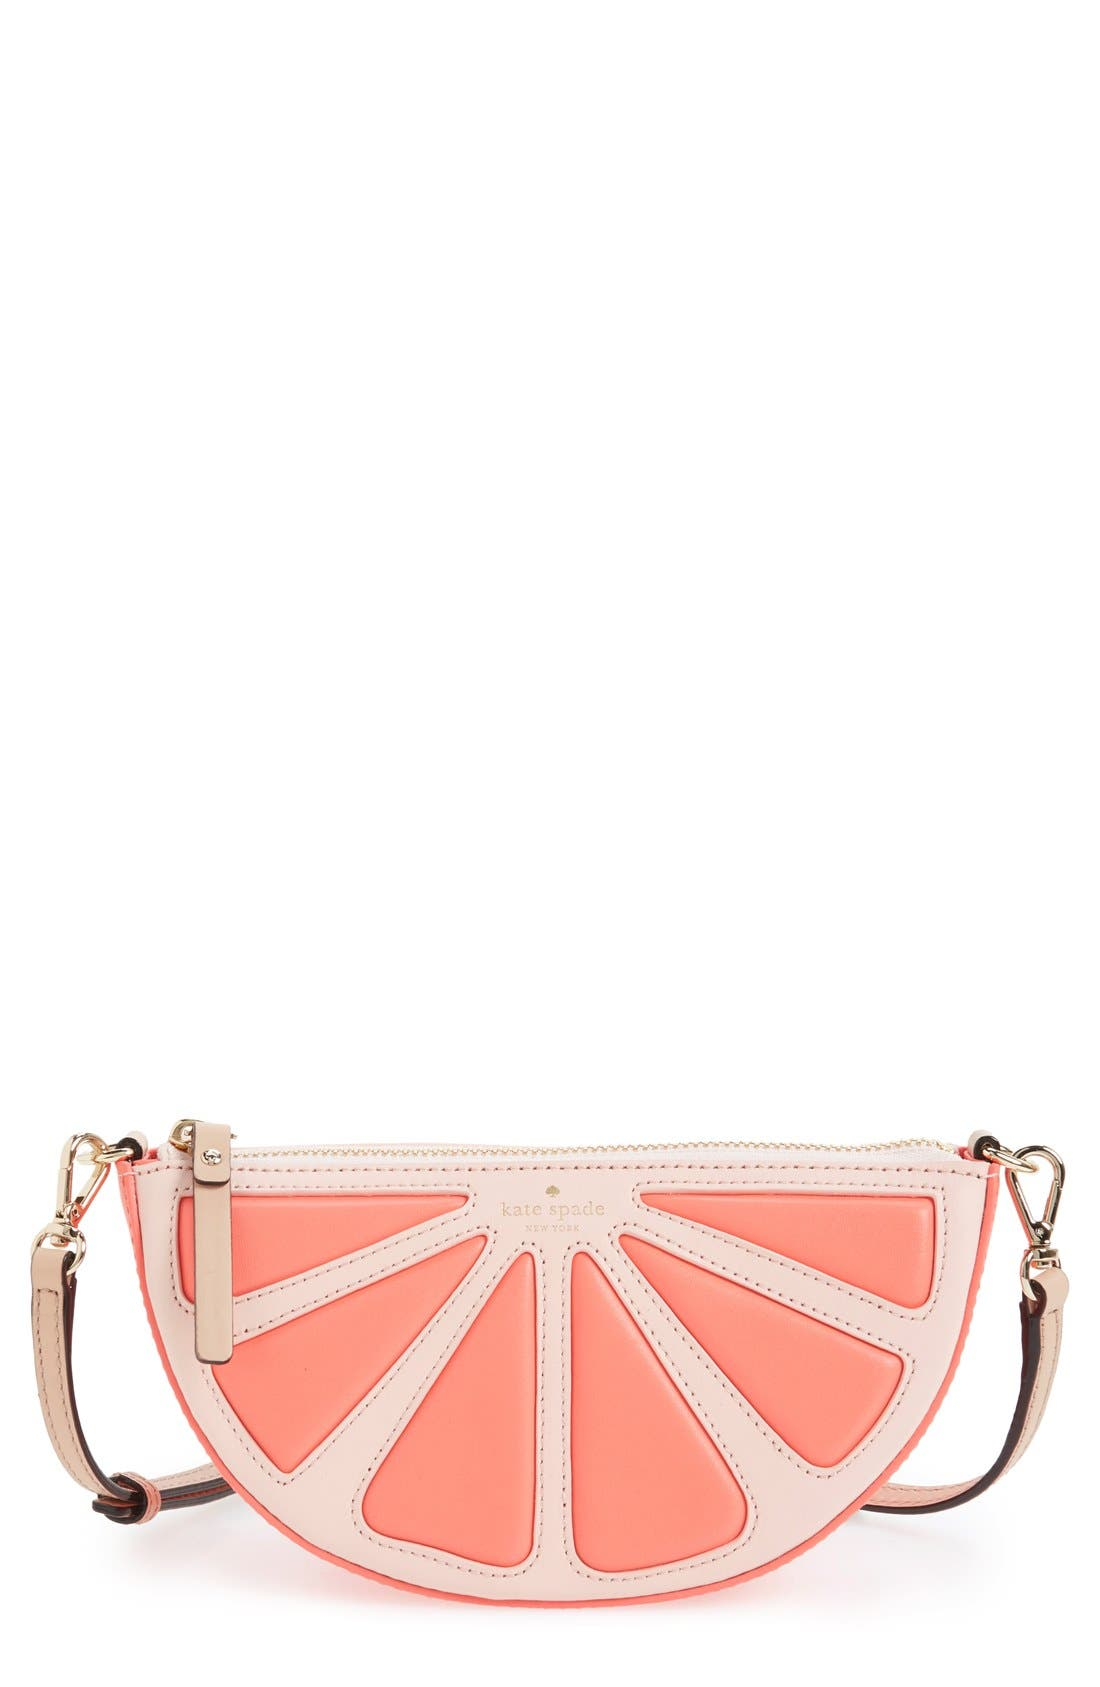 Main Image - kate spade new york 'flights of fancy' grapefruit crossbody bag